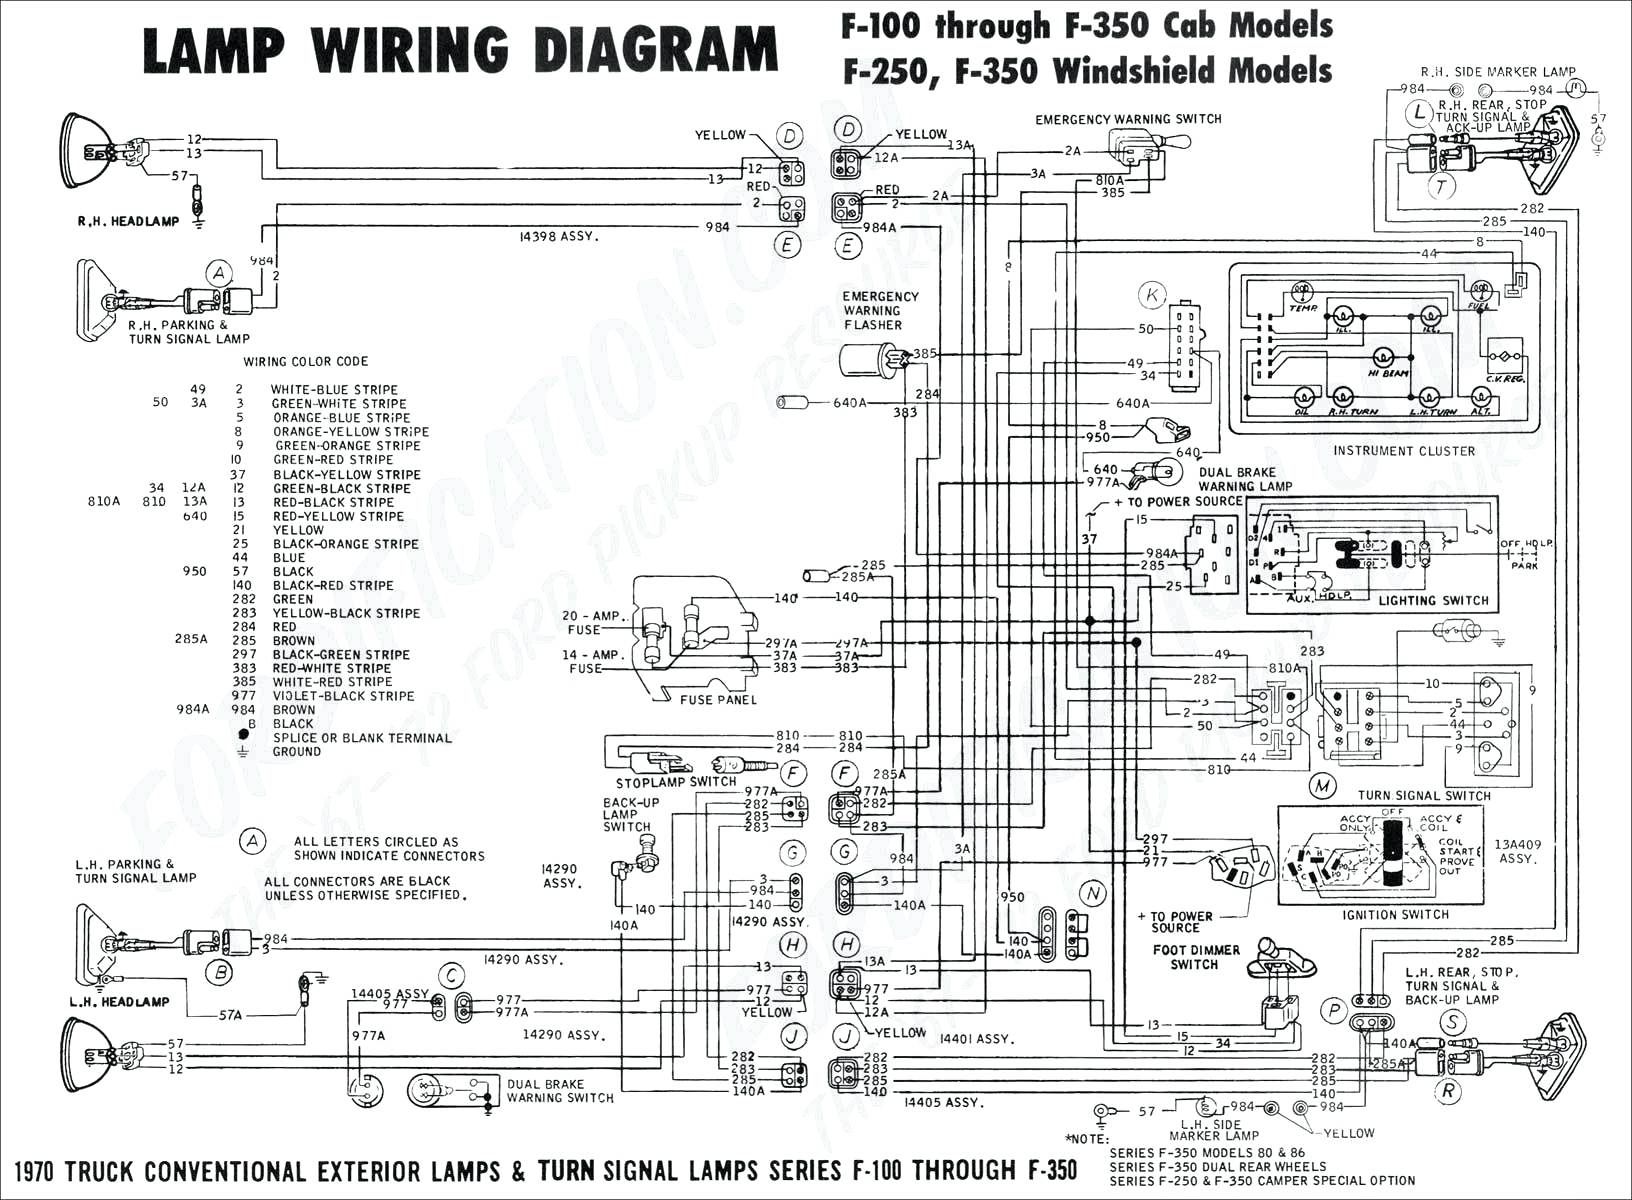 2000 Dodge Ram Wiring Diagram from wholefoodsonabudget.com